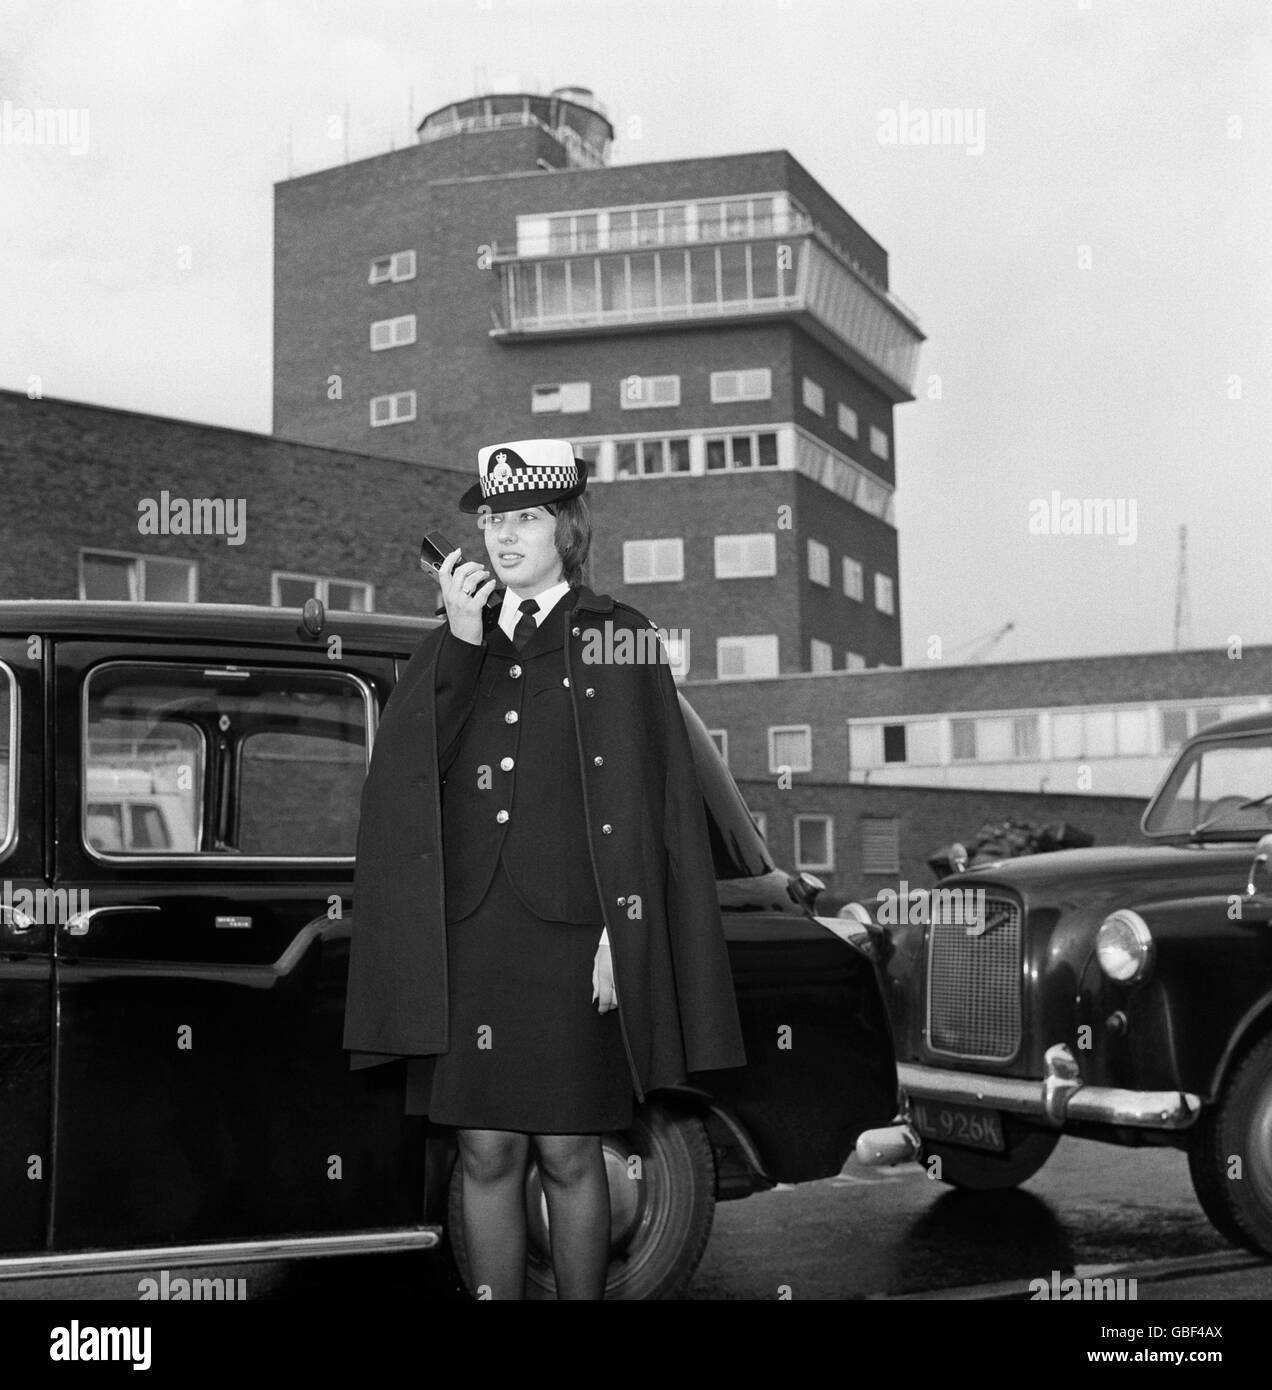 Work - Metropolitan Police - Heathrow Airport - 1974 - Stock Image